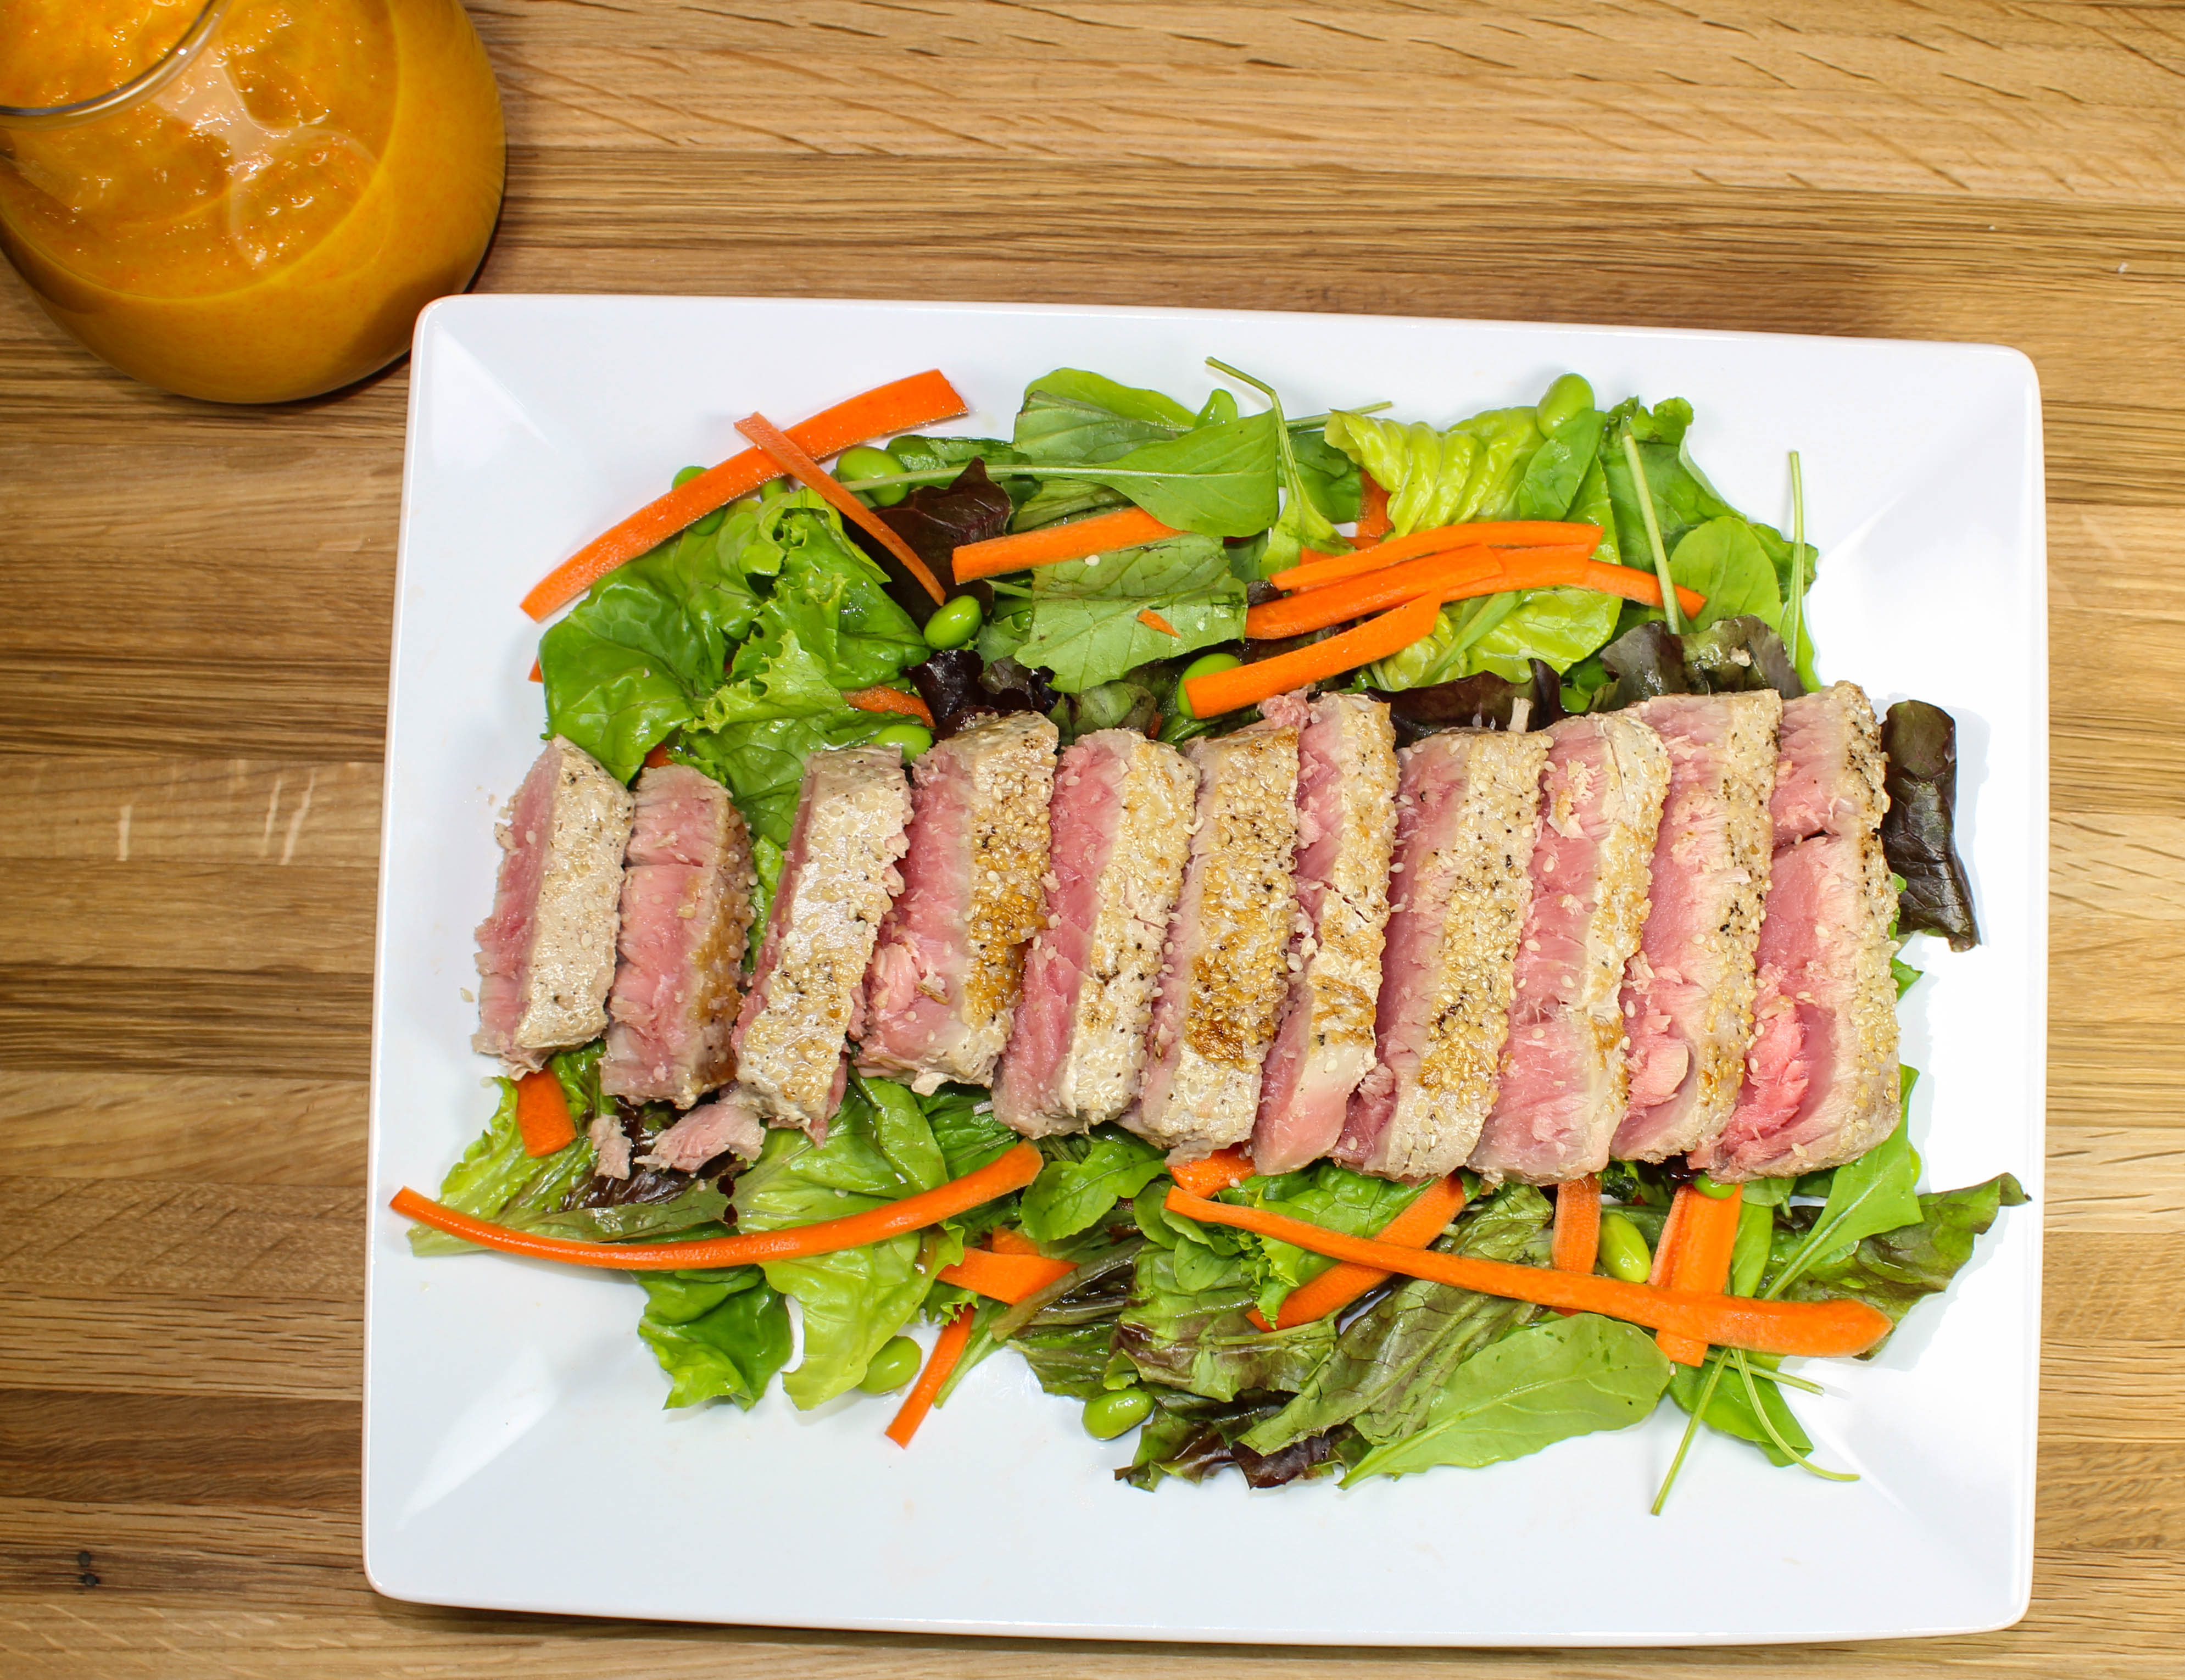 Sesame Ahi Tuna Salad is a great quick weeknight meal when you want to eat a hearty salad and enjoy a restaurant style meal at home. This salad is packed with fresh ingredients and can be made in under 30 minutes!